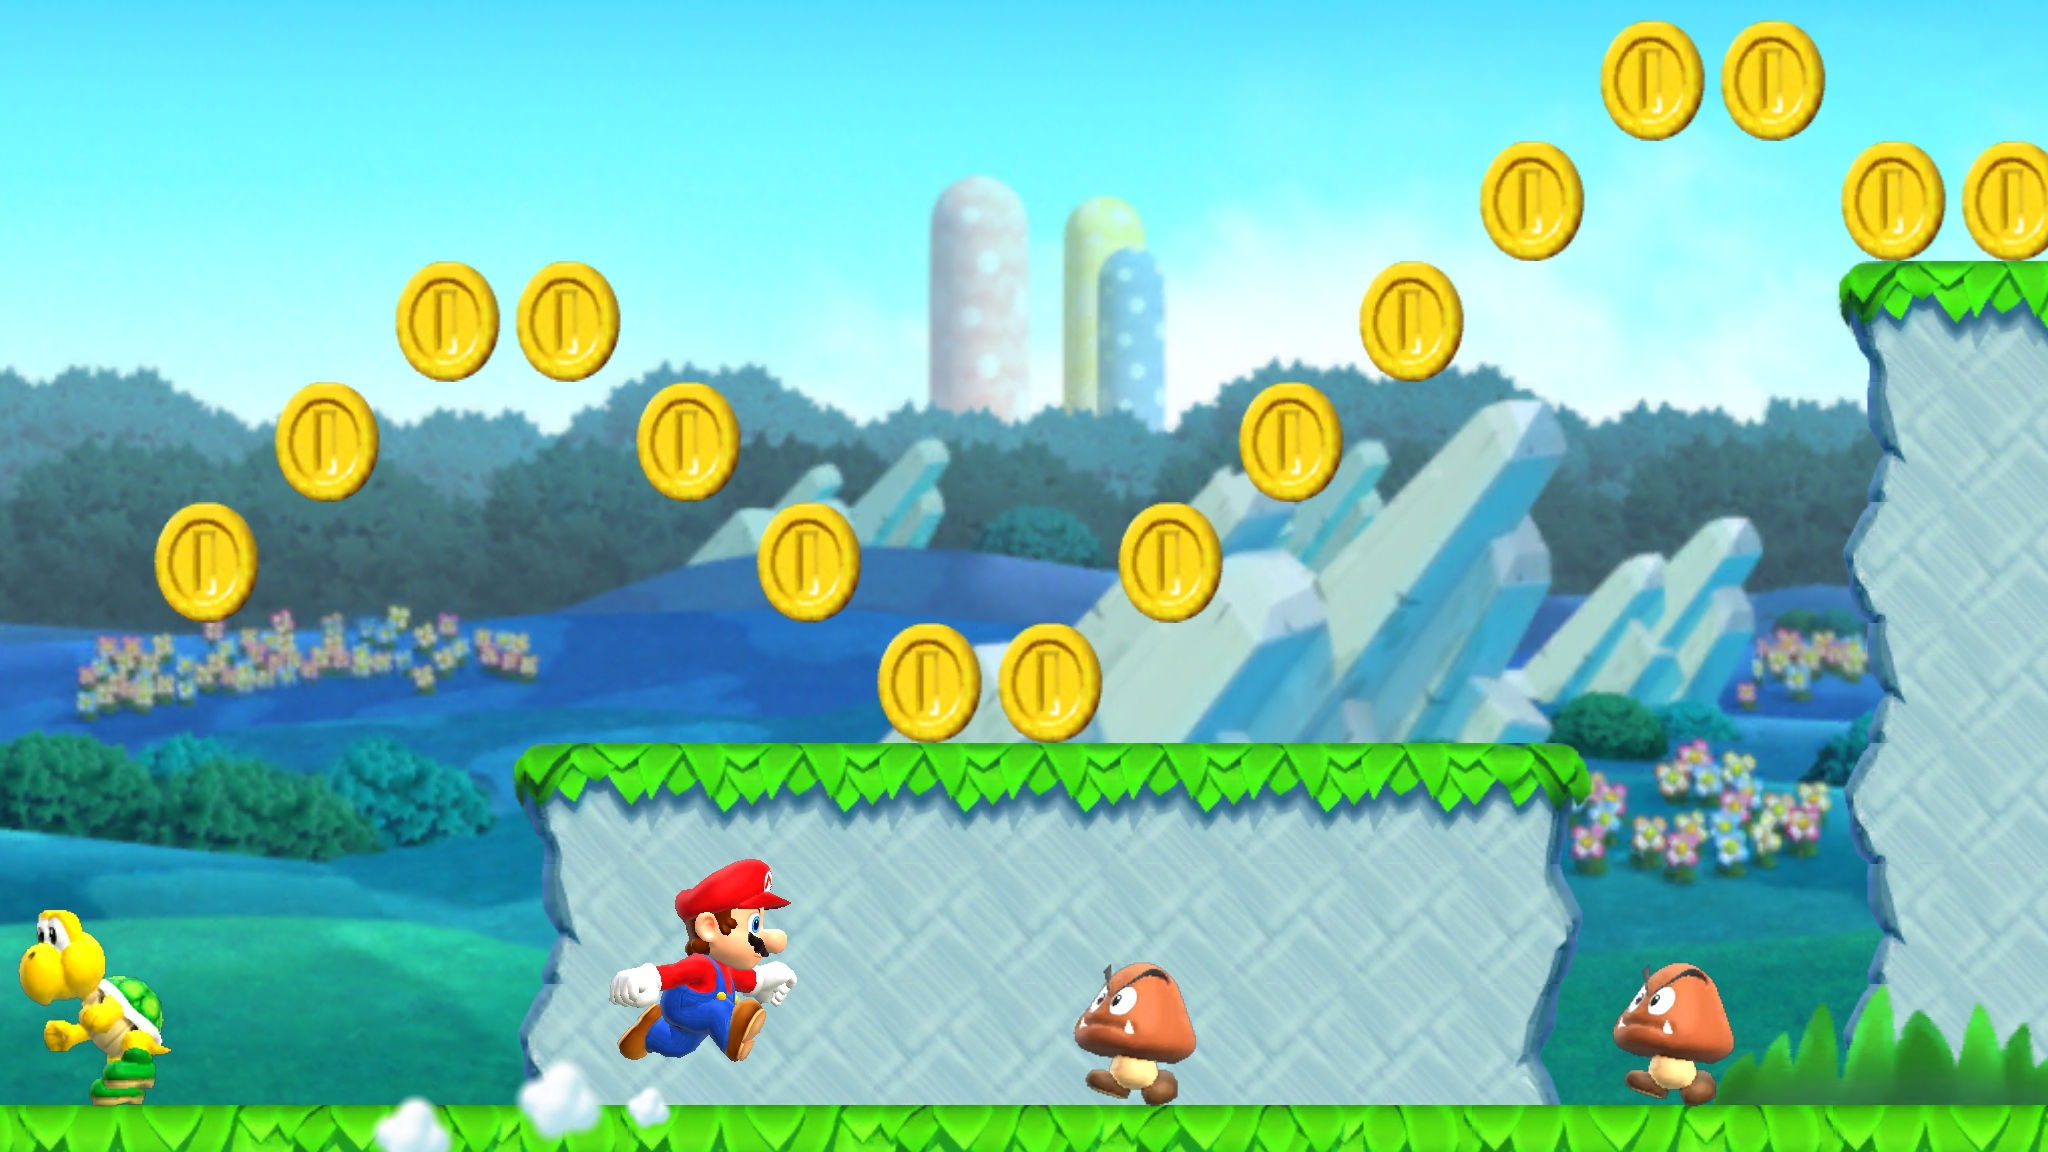 Super mario run download windows 10 | Peatix